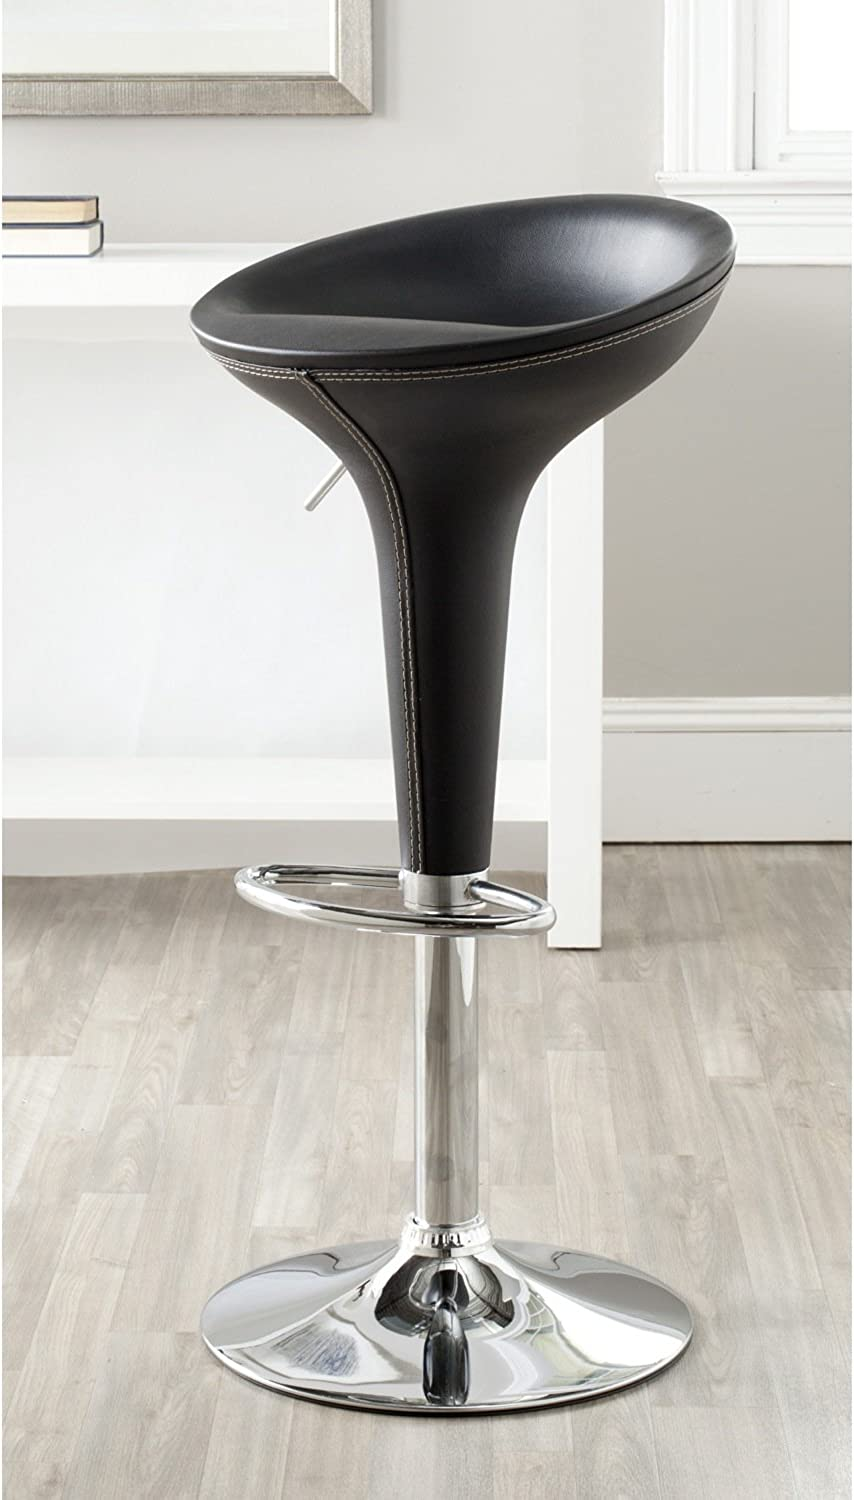 Safavieh Home Collection Shedrack Black Barstool